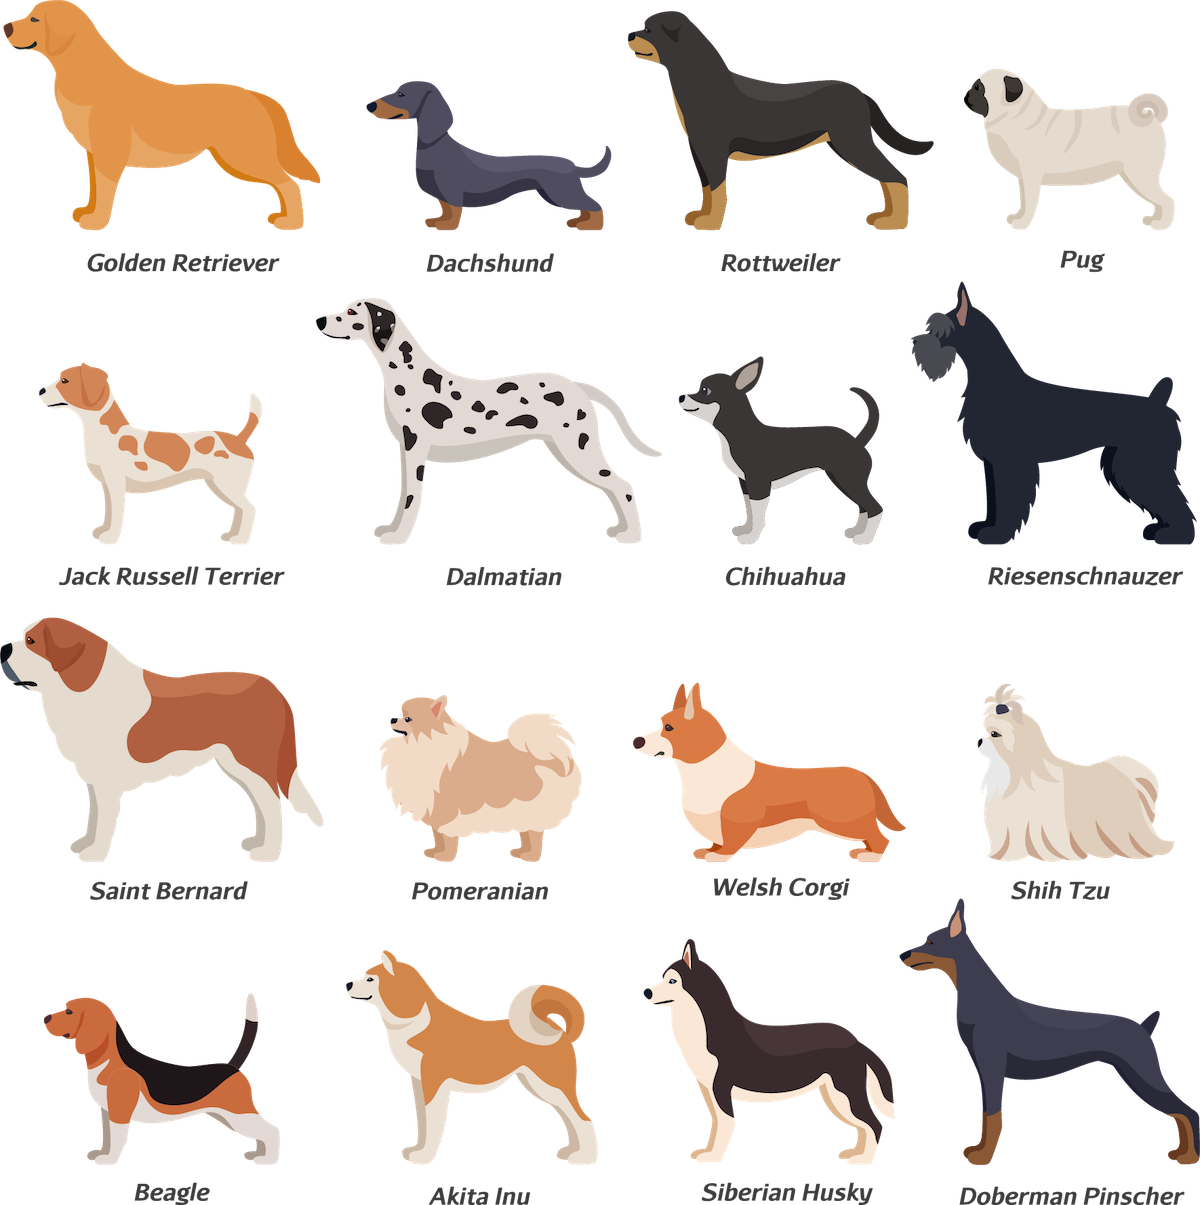 Continental clip popular. Most dog breeds in